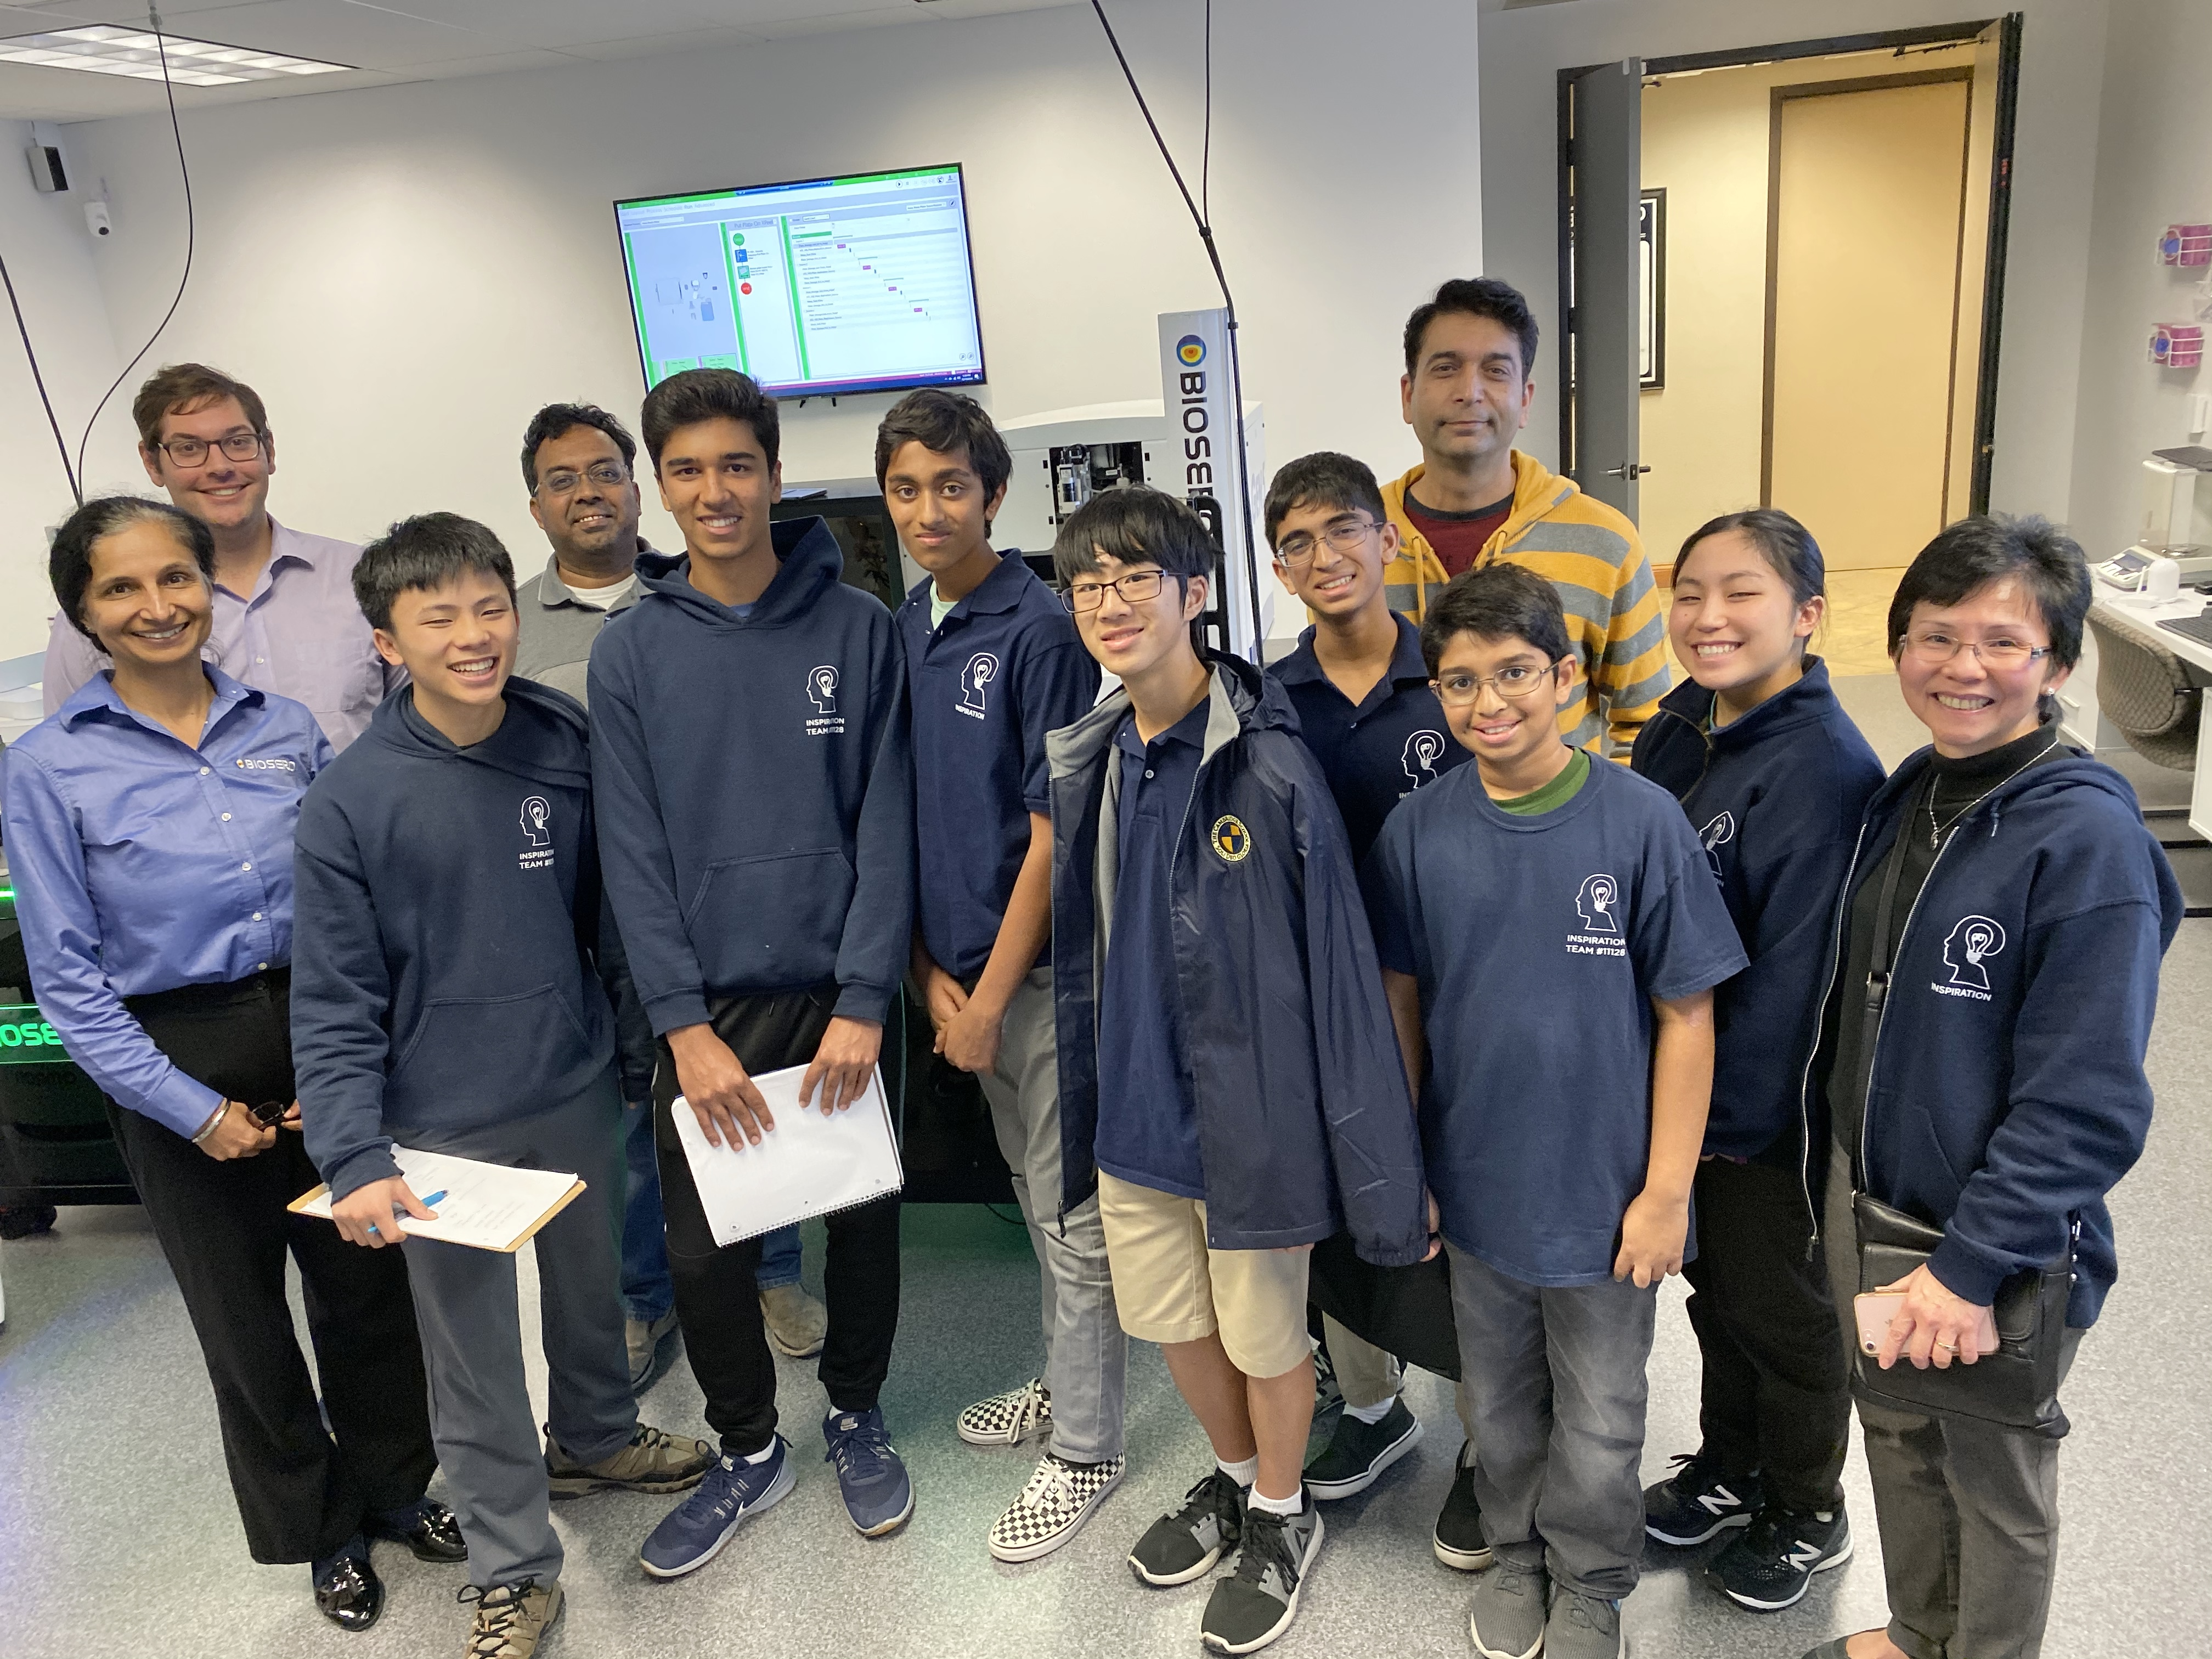 Team Inspiration Wins 1st Place at International Robotics Competition